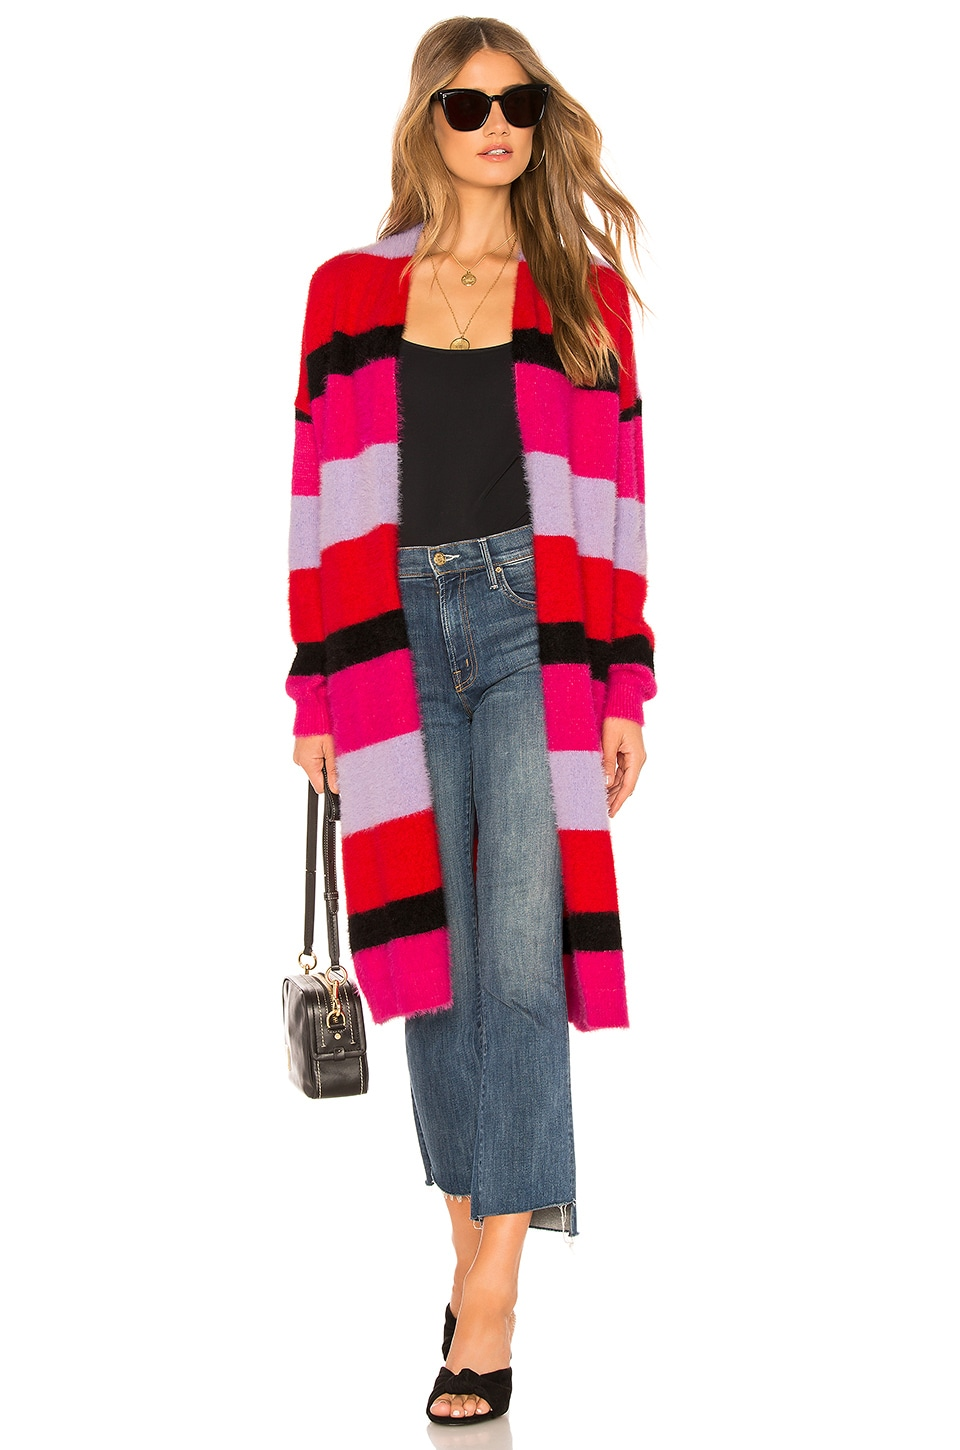 House of Harlow 1960 x REVOLVE Koons Duster in Red & Purples